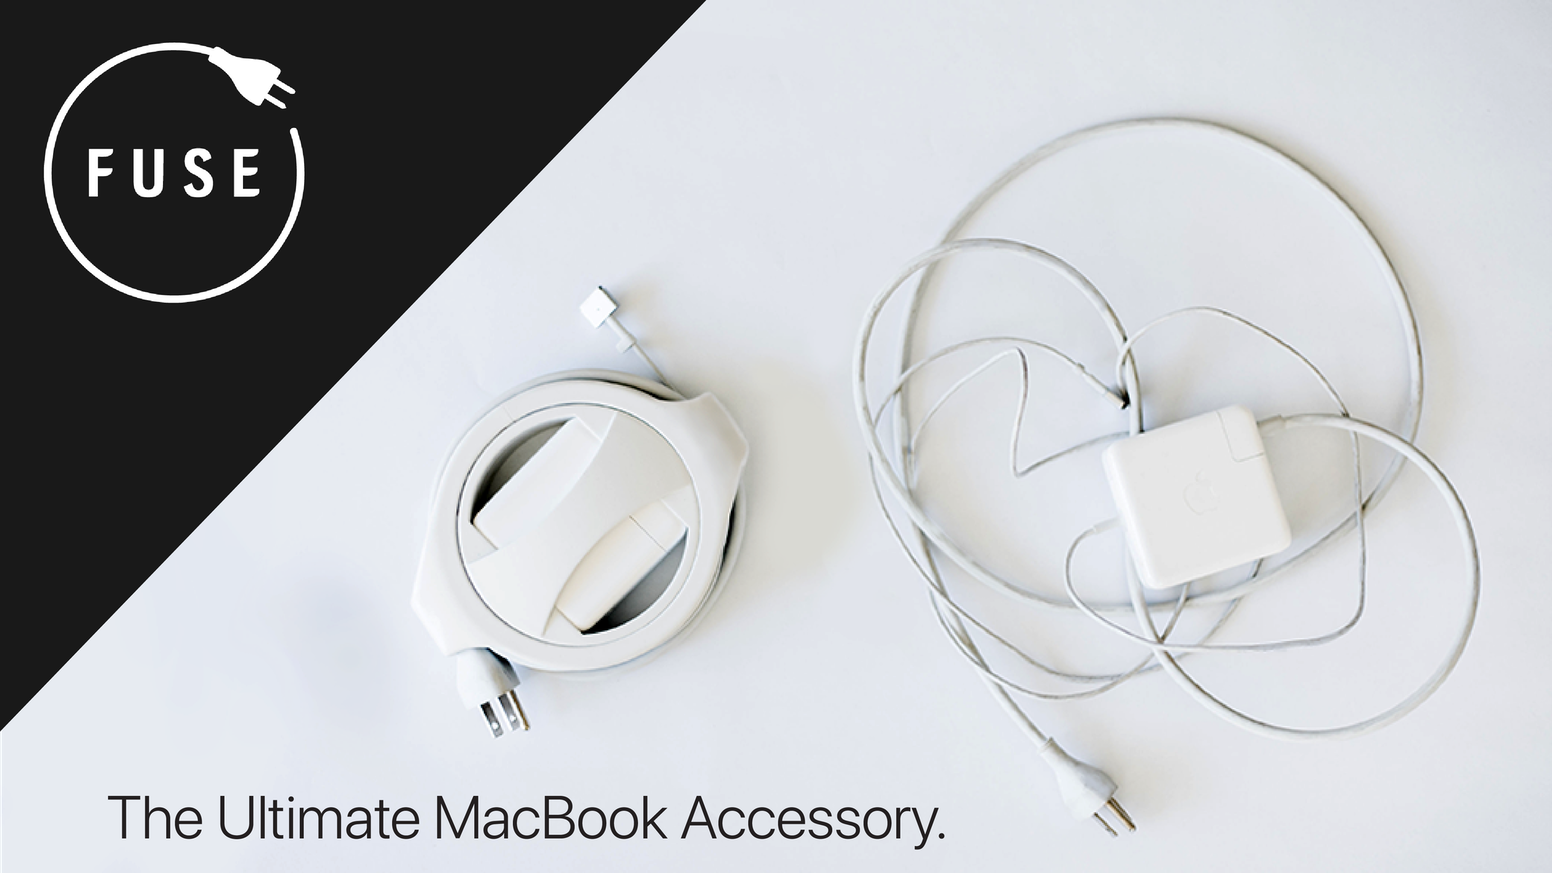 The Side Winder allows you to wind, store, and protect your MacBook Charger in under 6 seconds without ever having to touch your cables